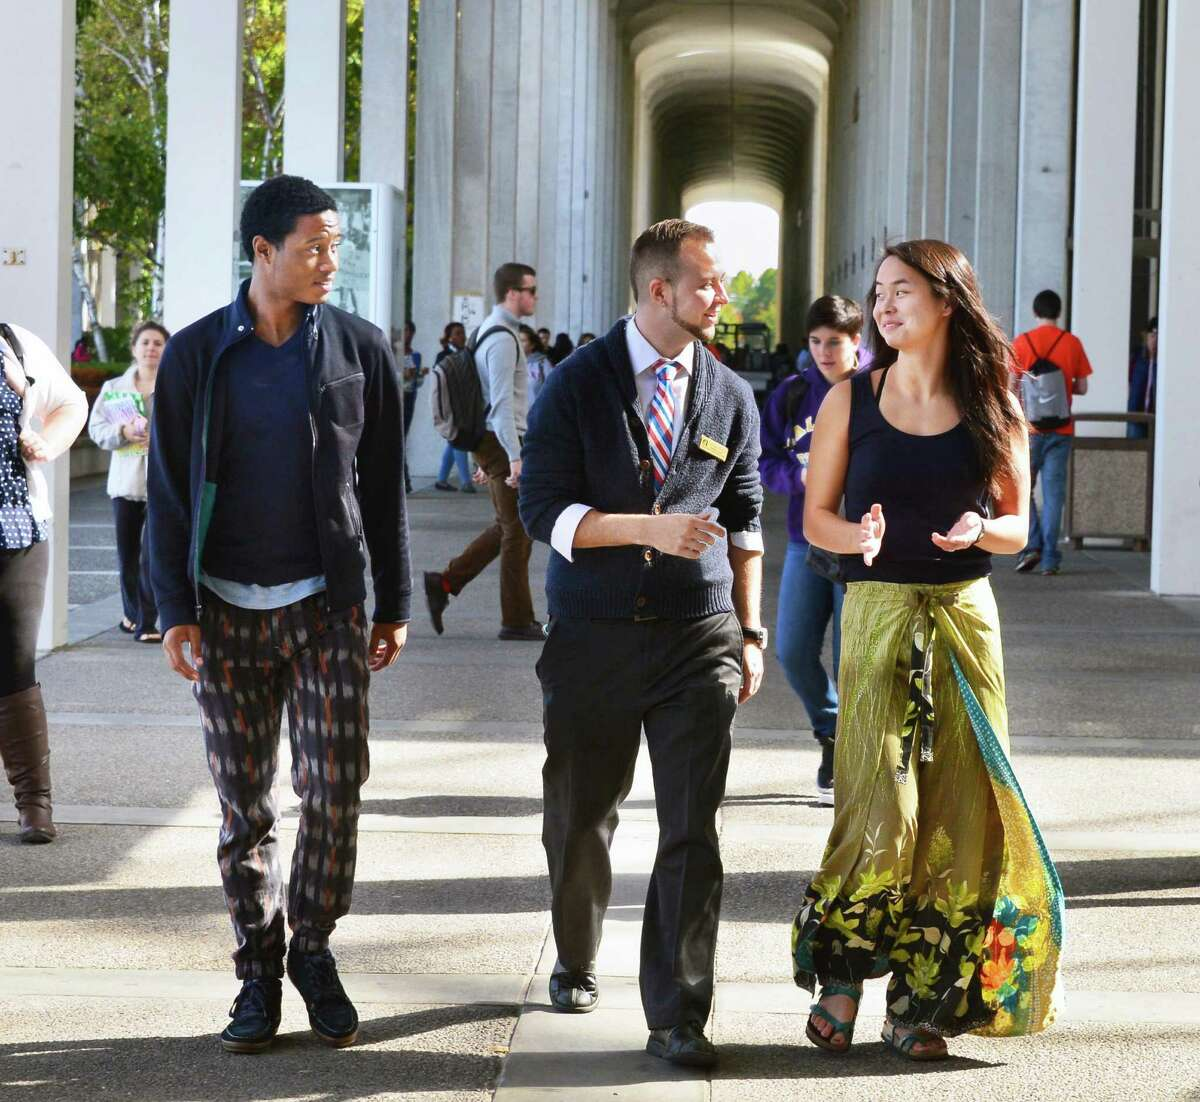 Courtney D'Allaird, center, coordinator, gender and sexuality resource center at UAlbany, walks with students Jonathan Whyte Dixon, left, and Meng Halvorson-Phelan on campus Wednesday Oct. 9, 2013, in Albany, NY. (John Carl D'Annibale / Times Union)